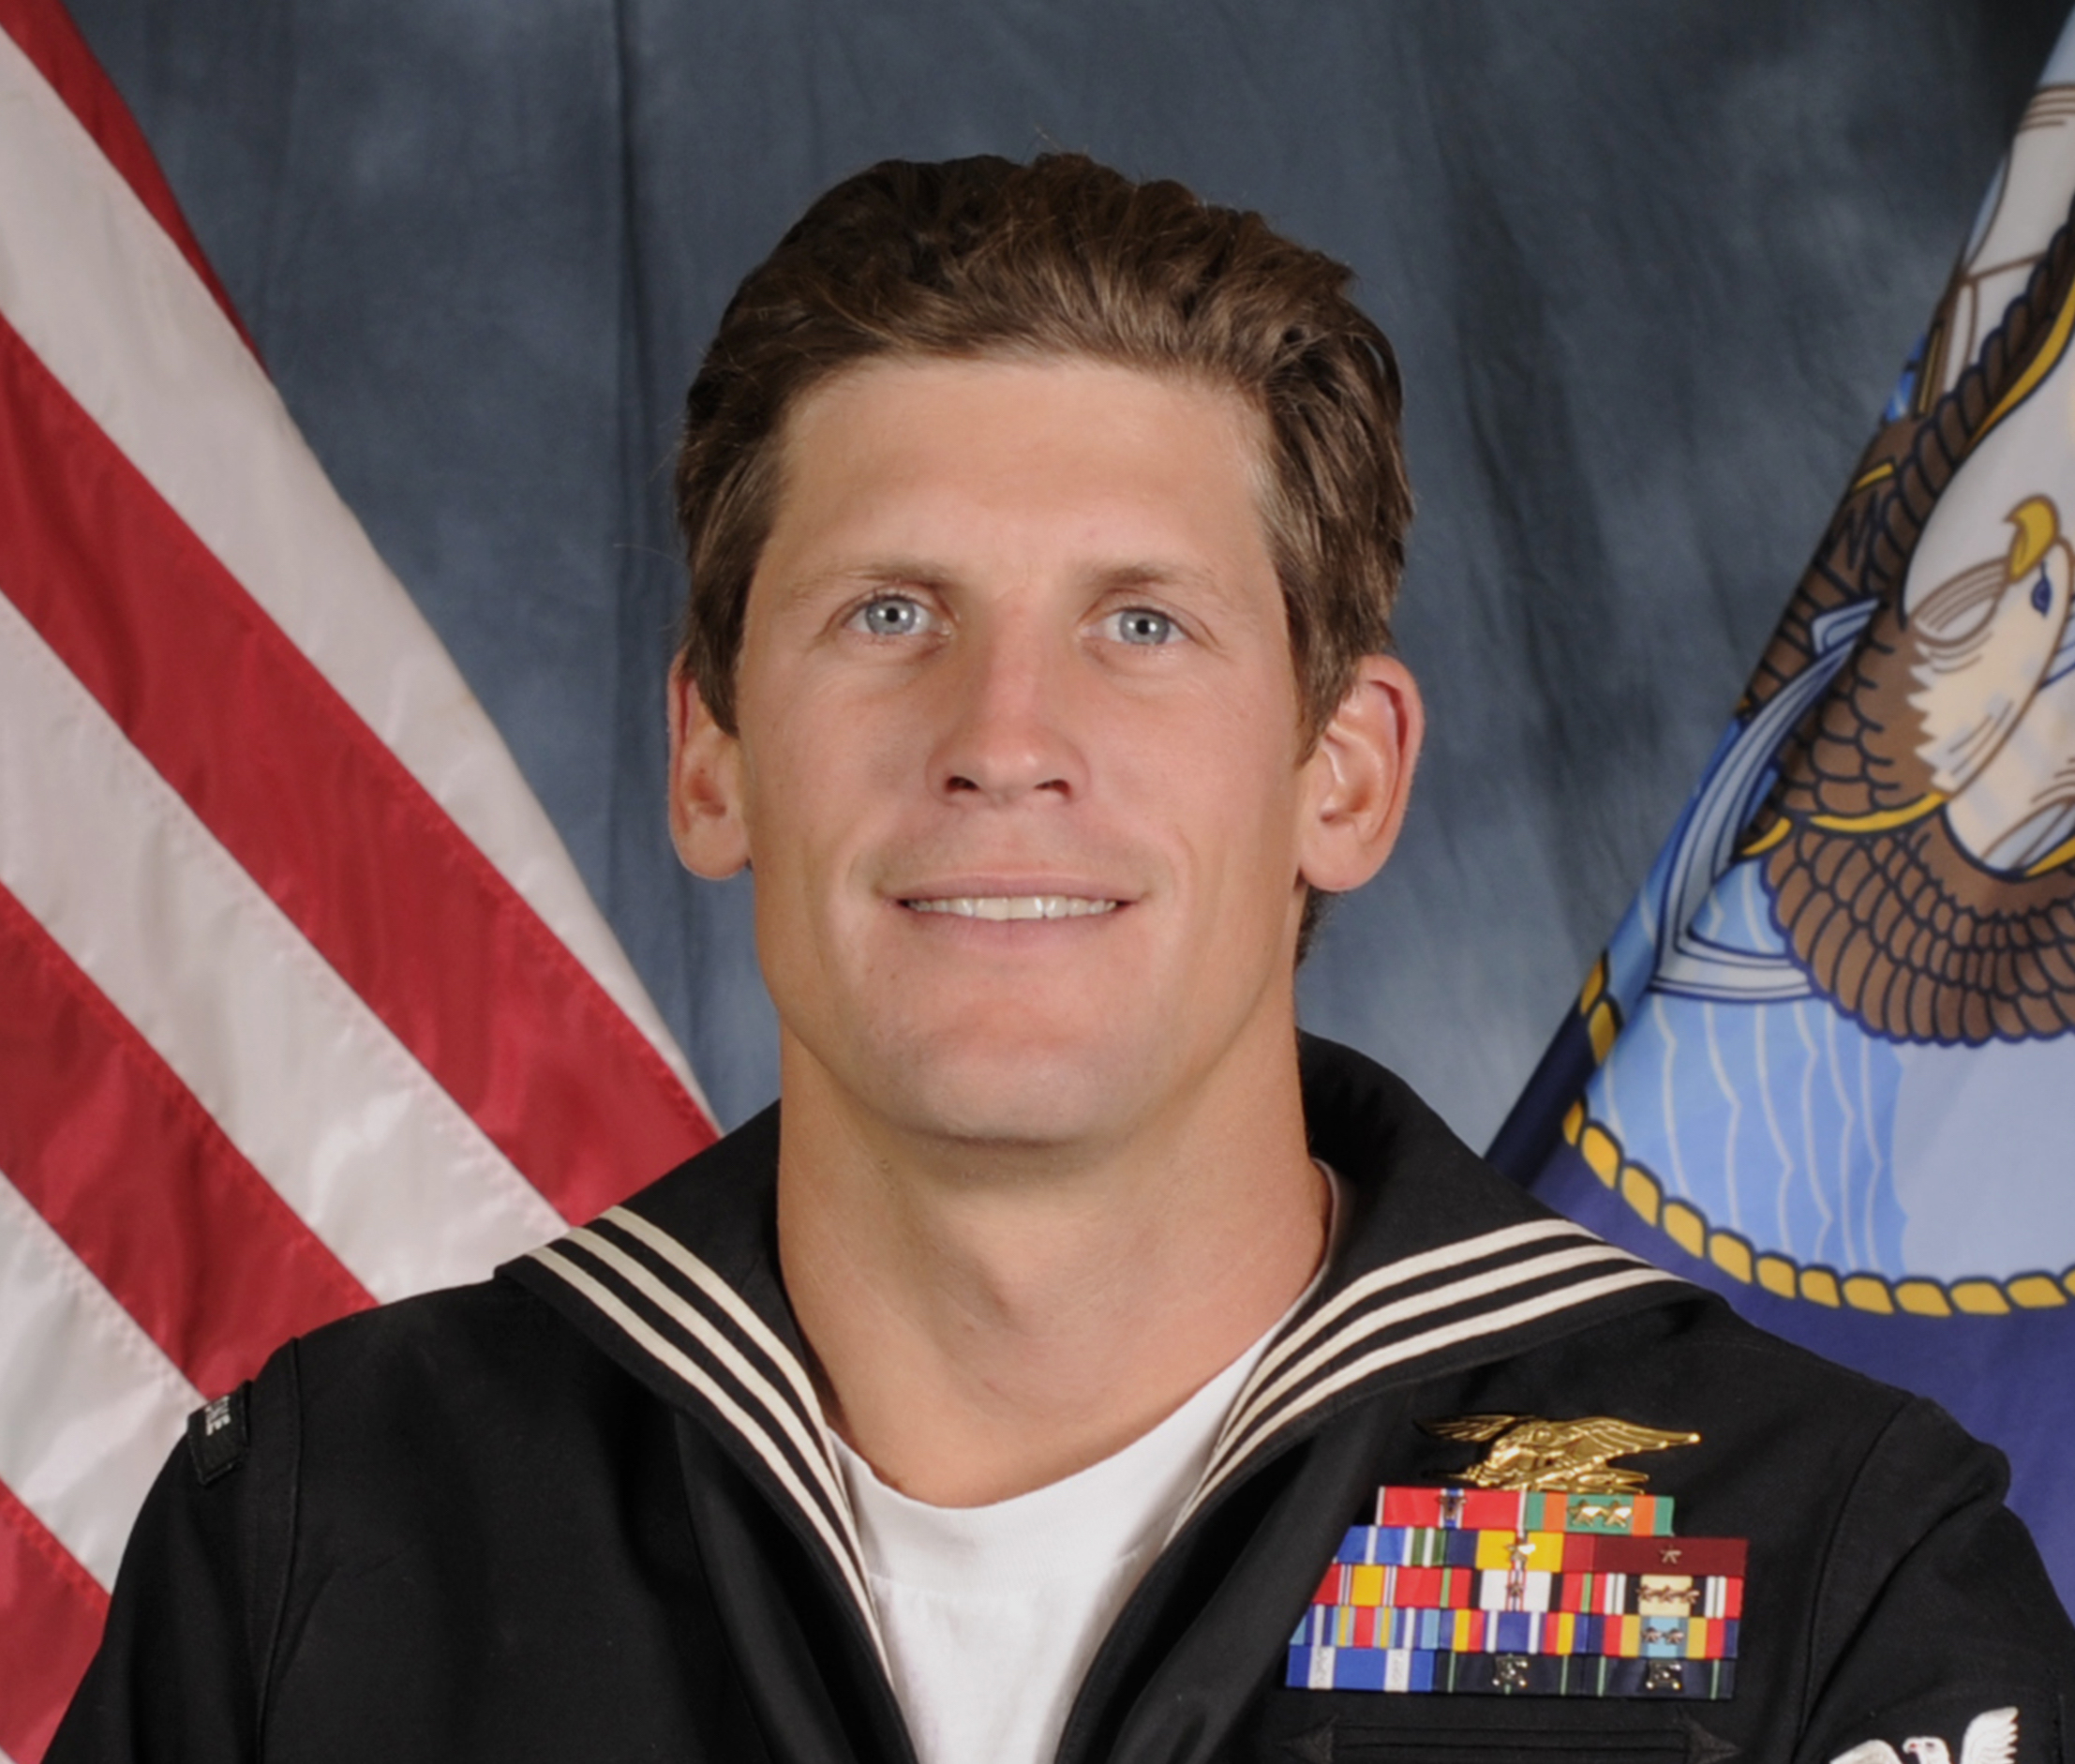 160504-N-N0101-001 WASHINGTON (May 4, 2016) U.S. Navy file photo of Special Warfare Operator 1st Class Charles Keating IV, 31, of San Diego. (U.S. Navy photo/Released)